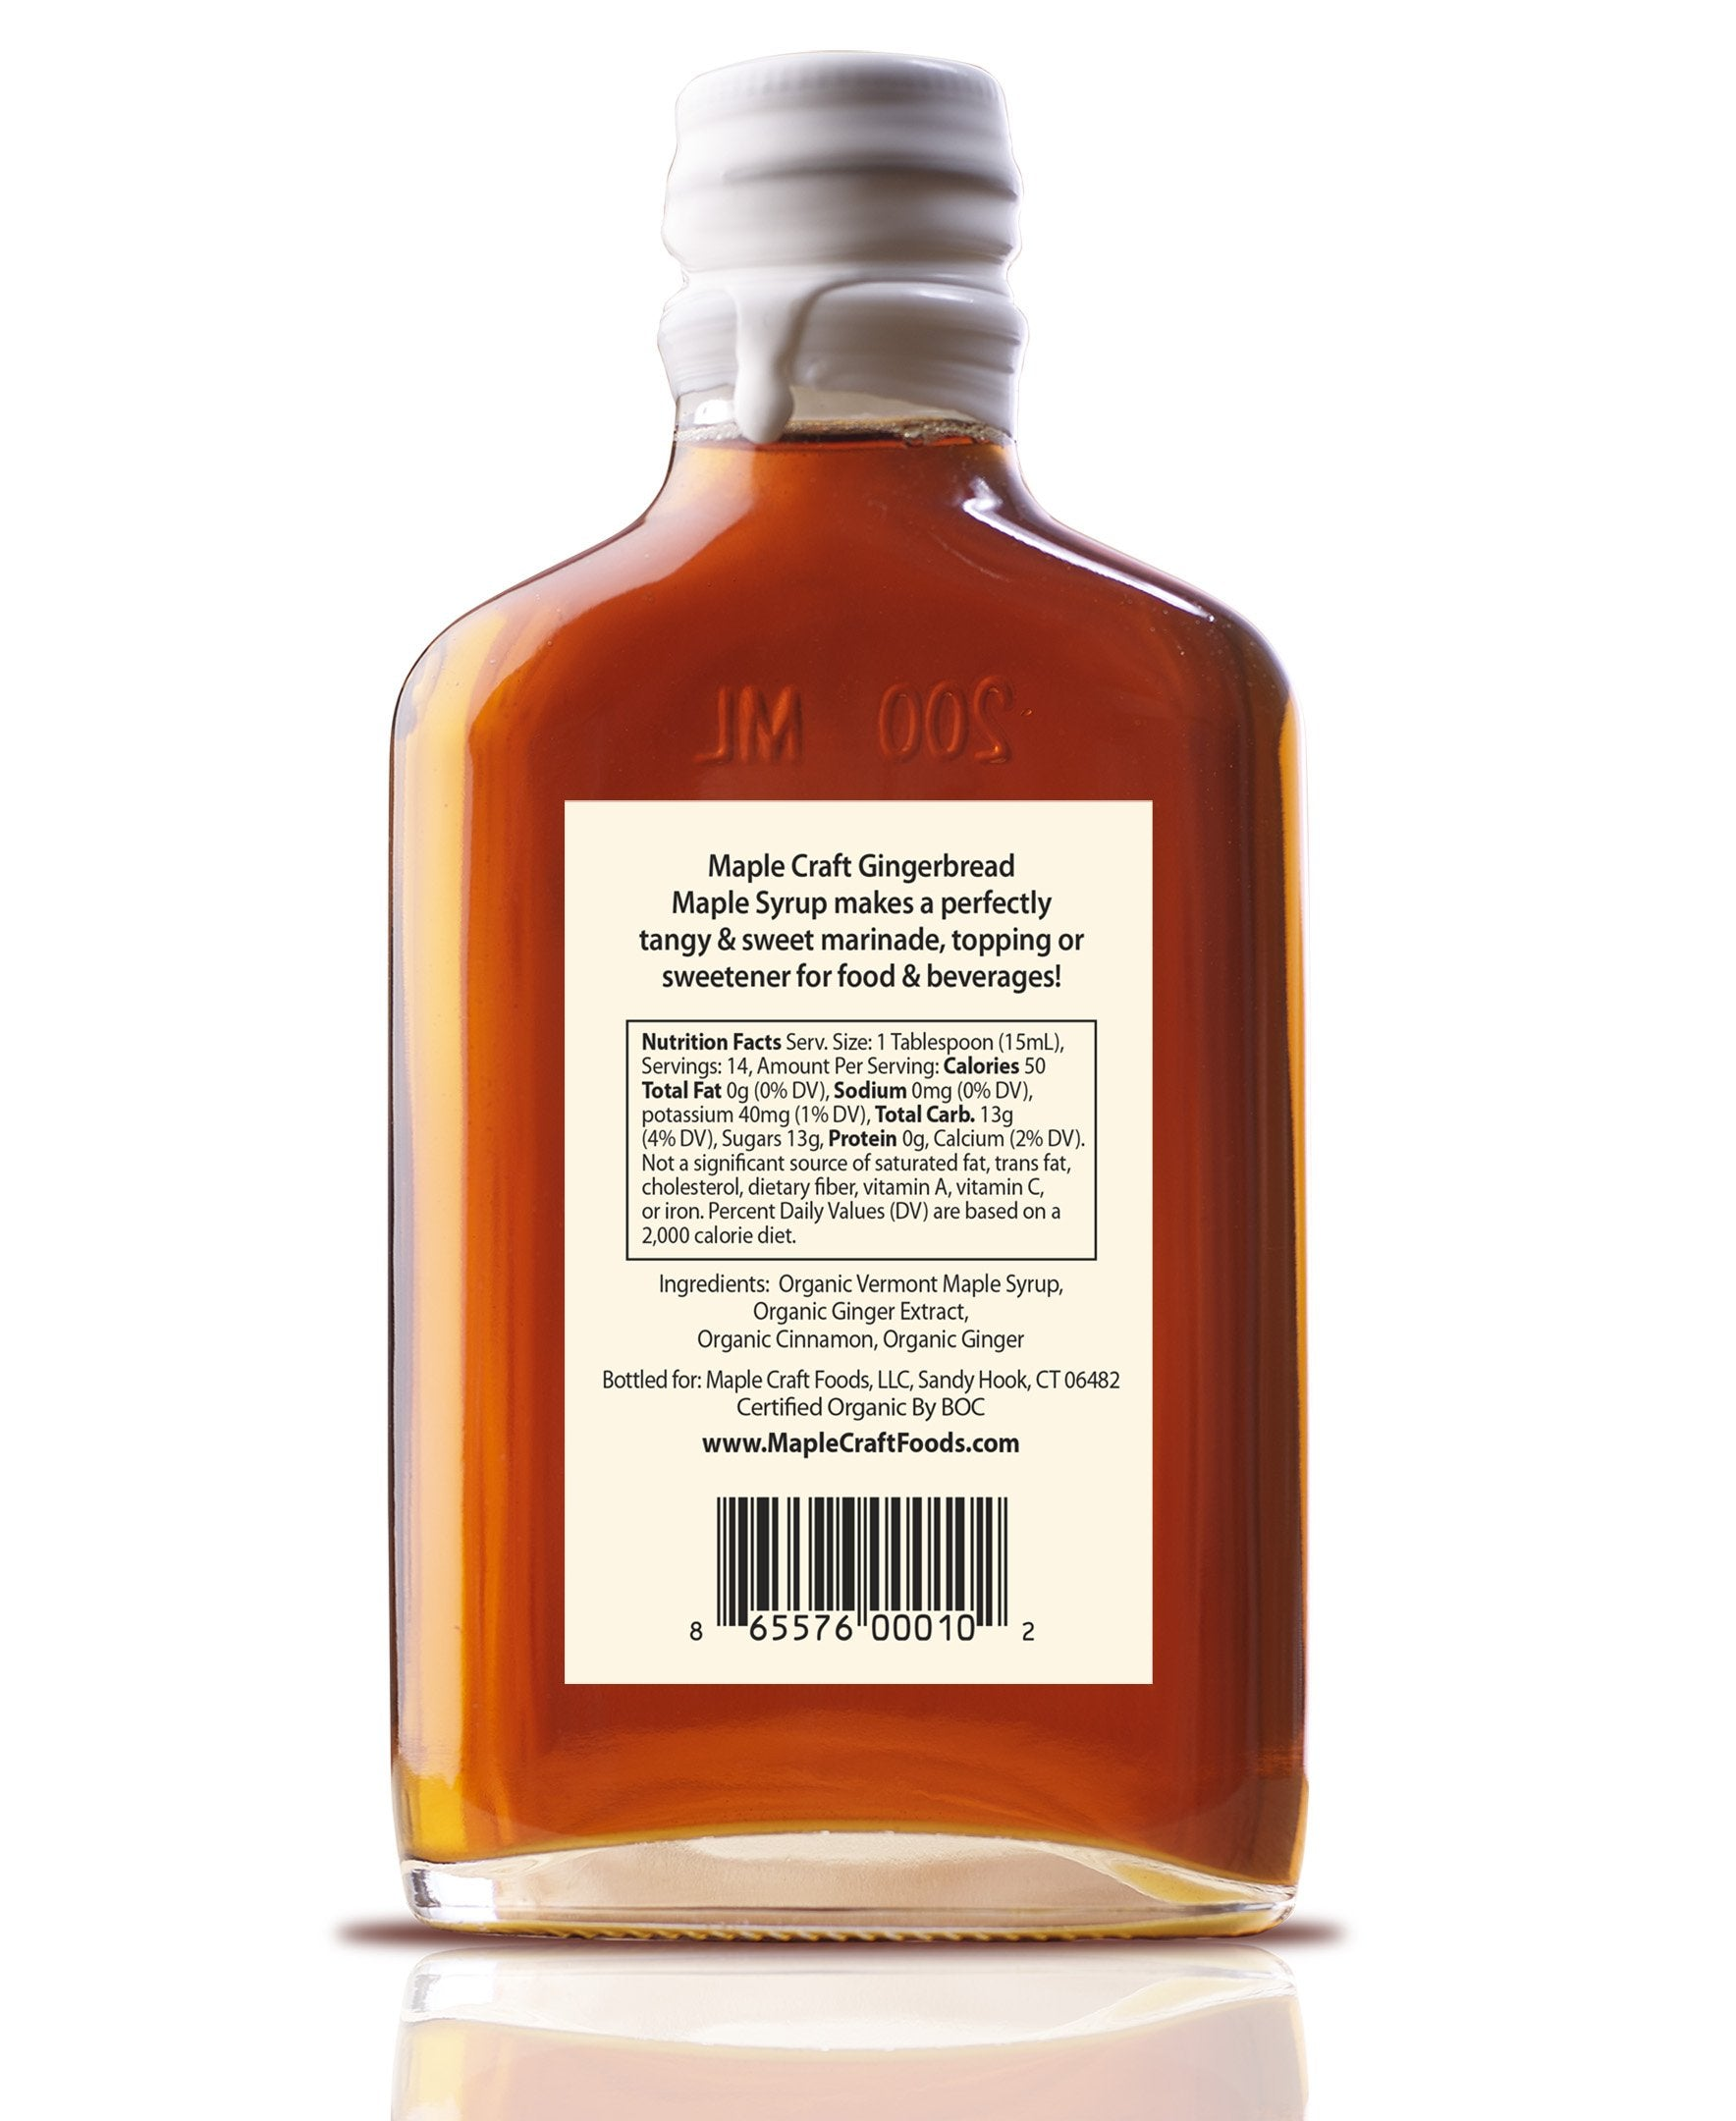 Gingerbread Maple Craft Syrup (Organic)